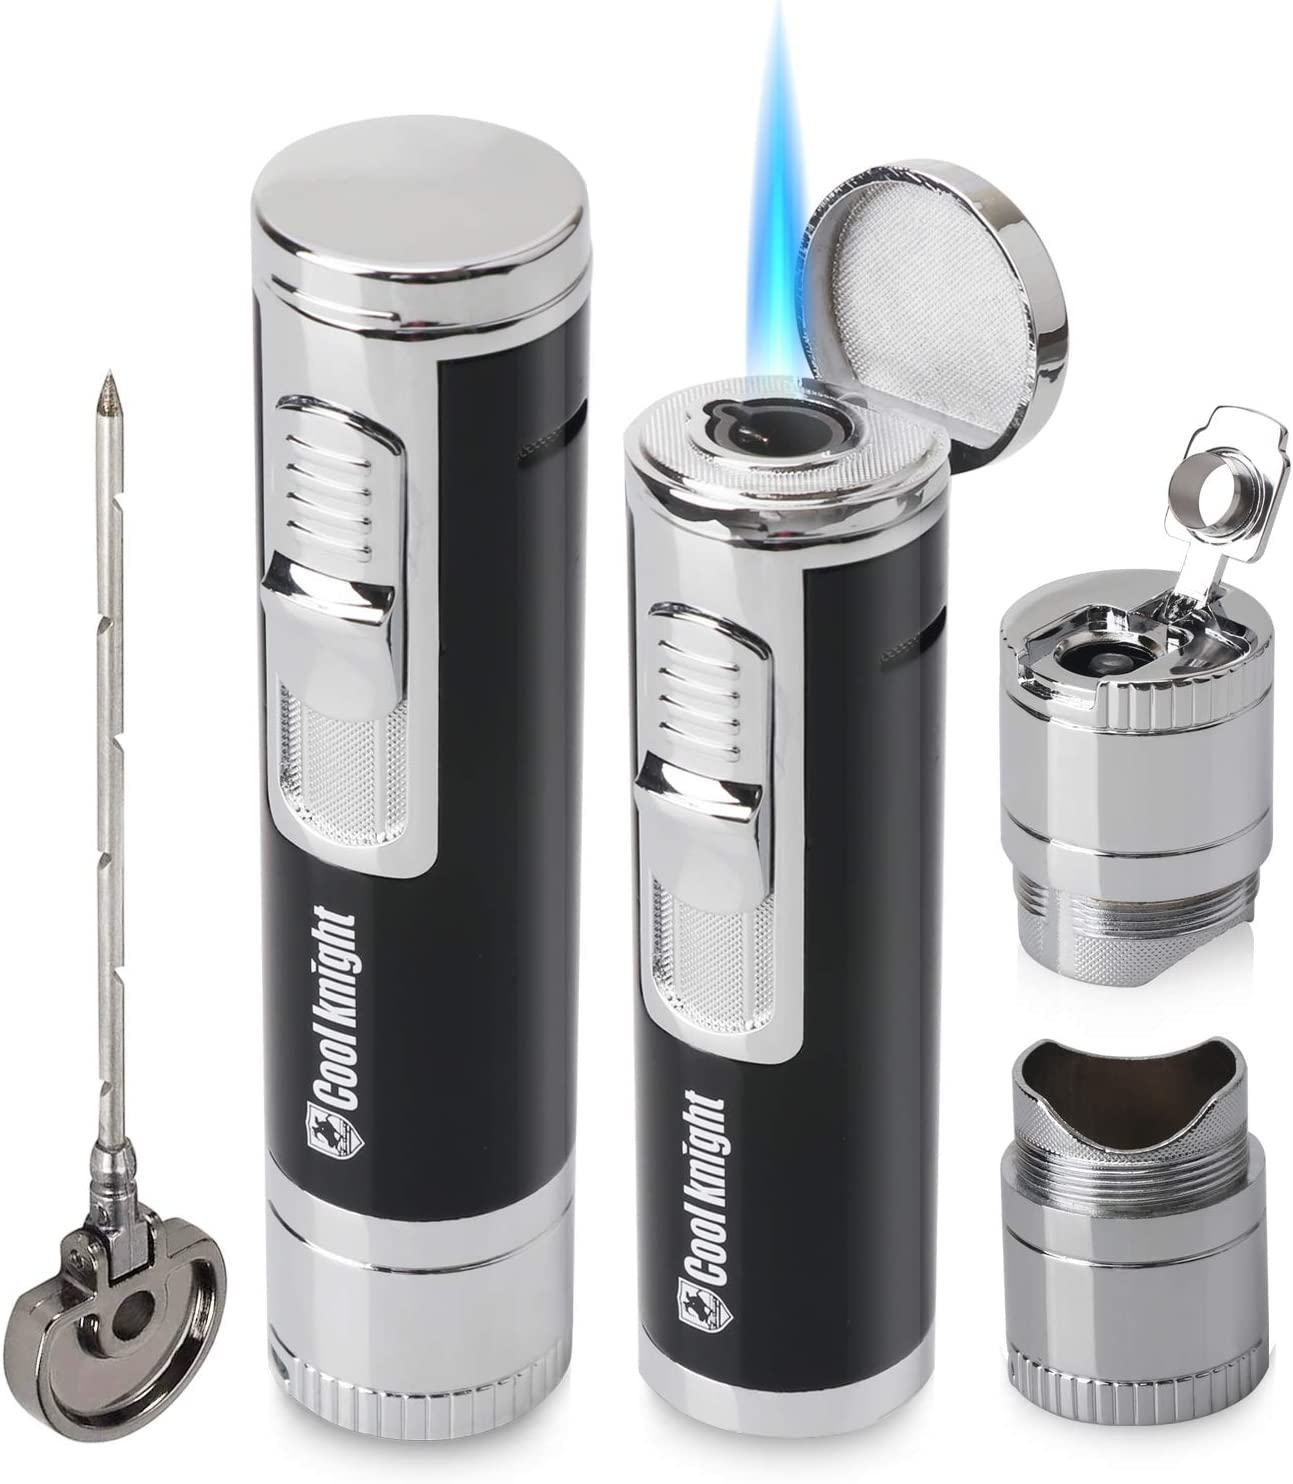 Sales of SALE items from new works COOL KNIGHT Genuine Cigar Accessories C asscessories Lighter